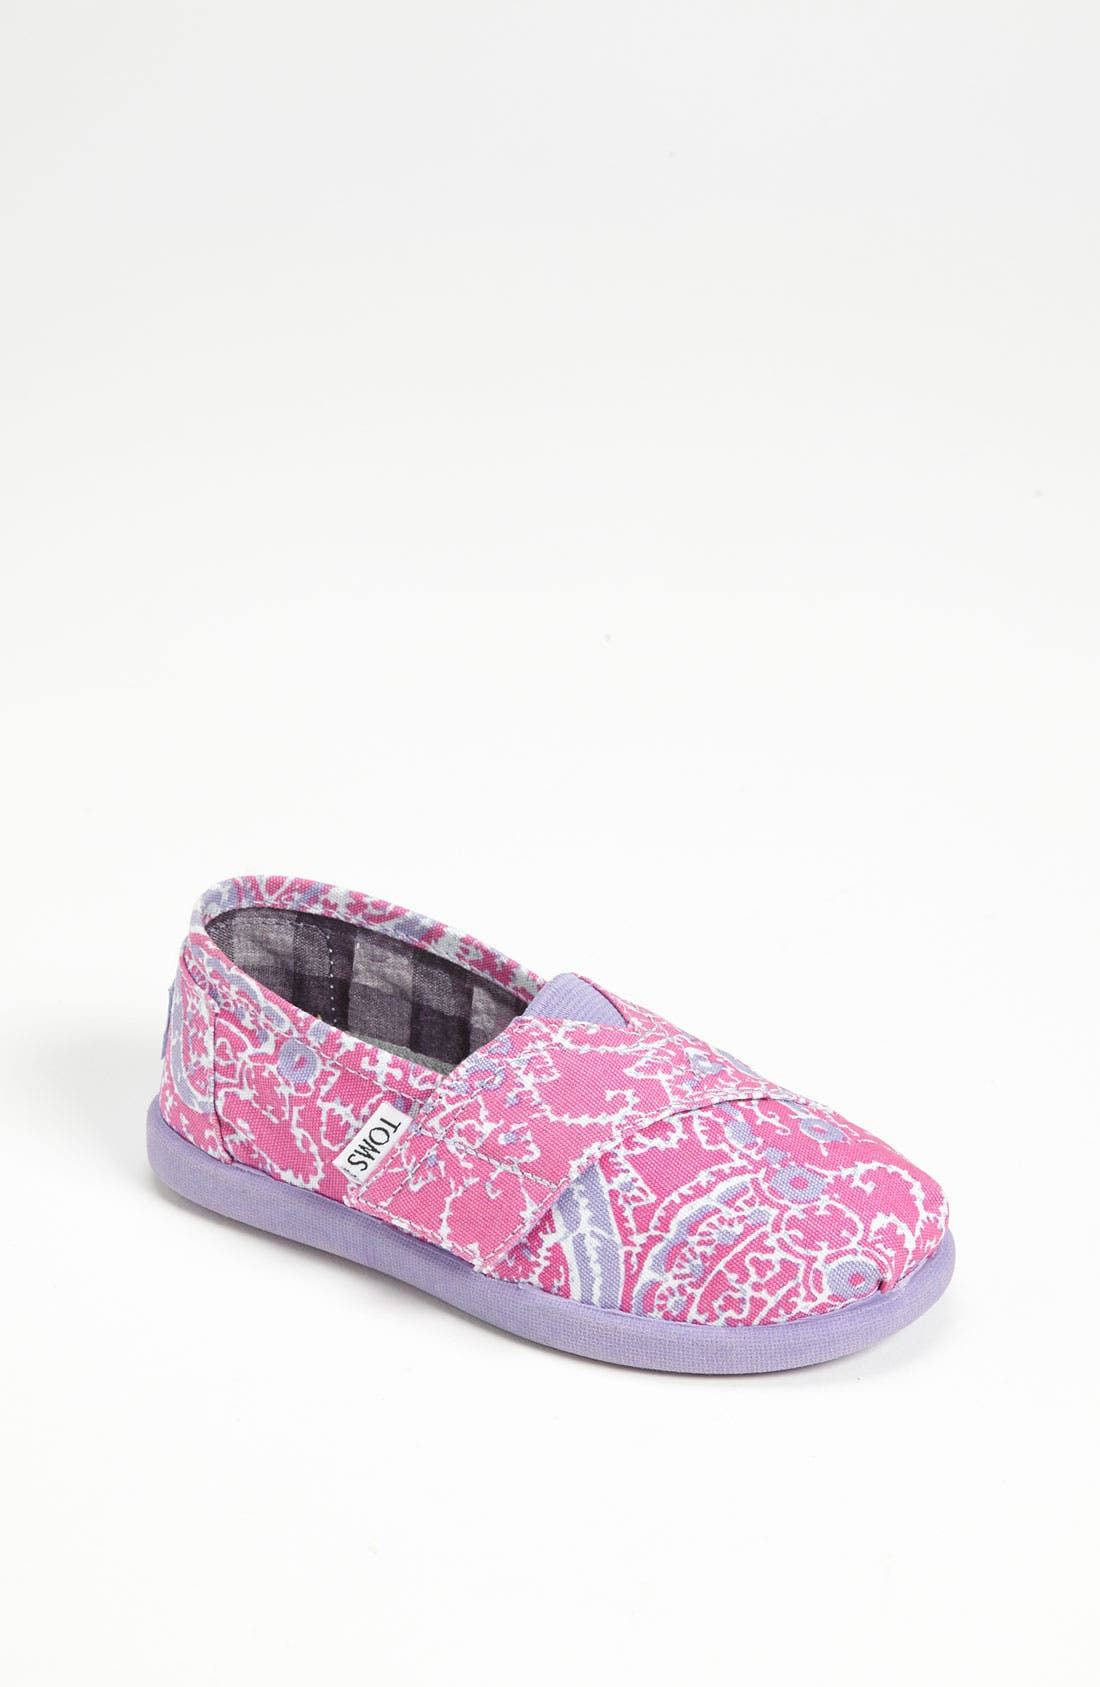 Alternate Image 1 Selected - TOMS 'Classic Tiny - Paisley' Slip-On (Baby, Walker & Toddler)